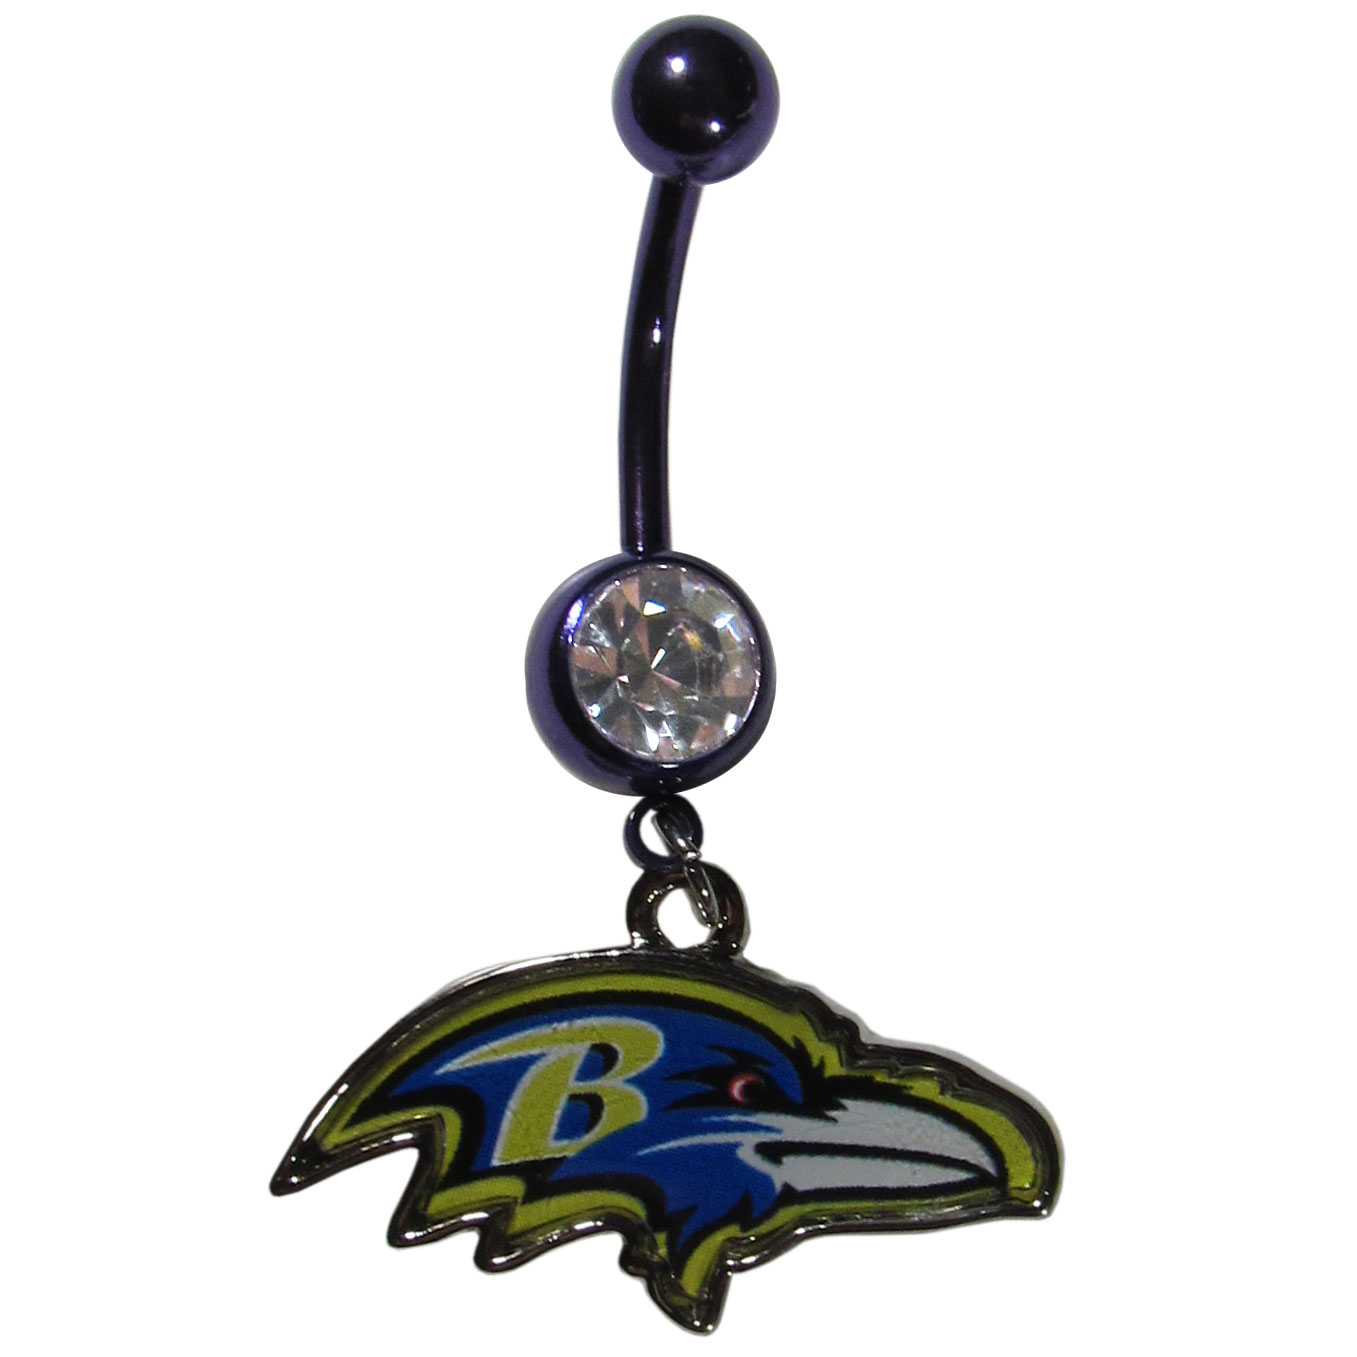 Baltimore Ravens Navel Ring - Let the world know you're a fan with our officially licensed Baltimore Ravens belly ring in vibrant team colors with a large, team colored crystal. The 14 gauge navel ring is 316L Surgical Stainless steel has a team dangle charm.